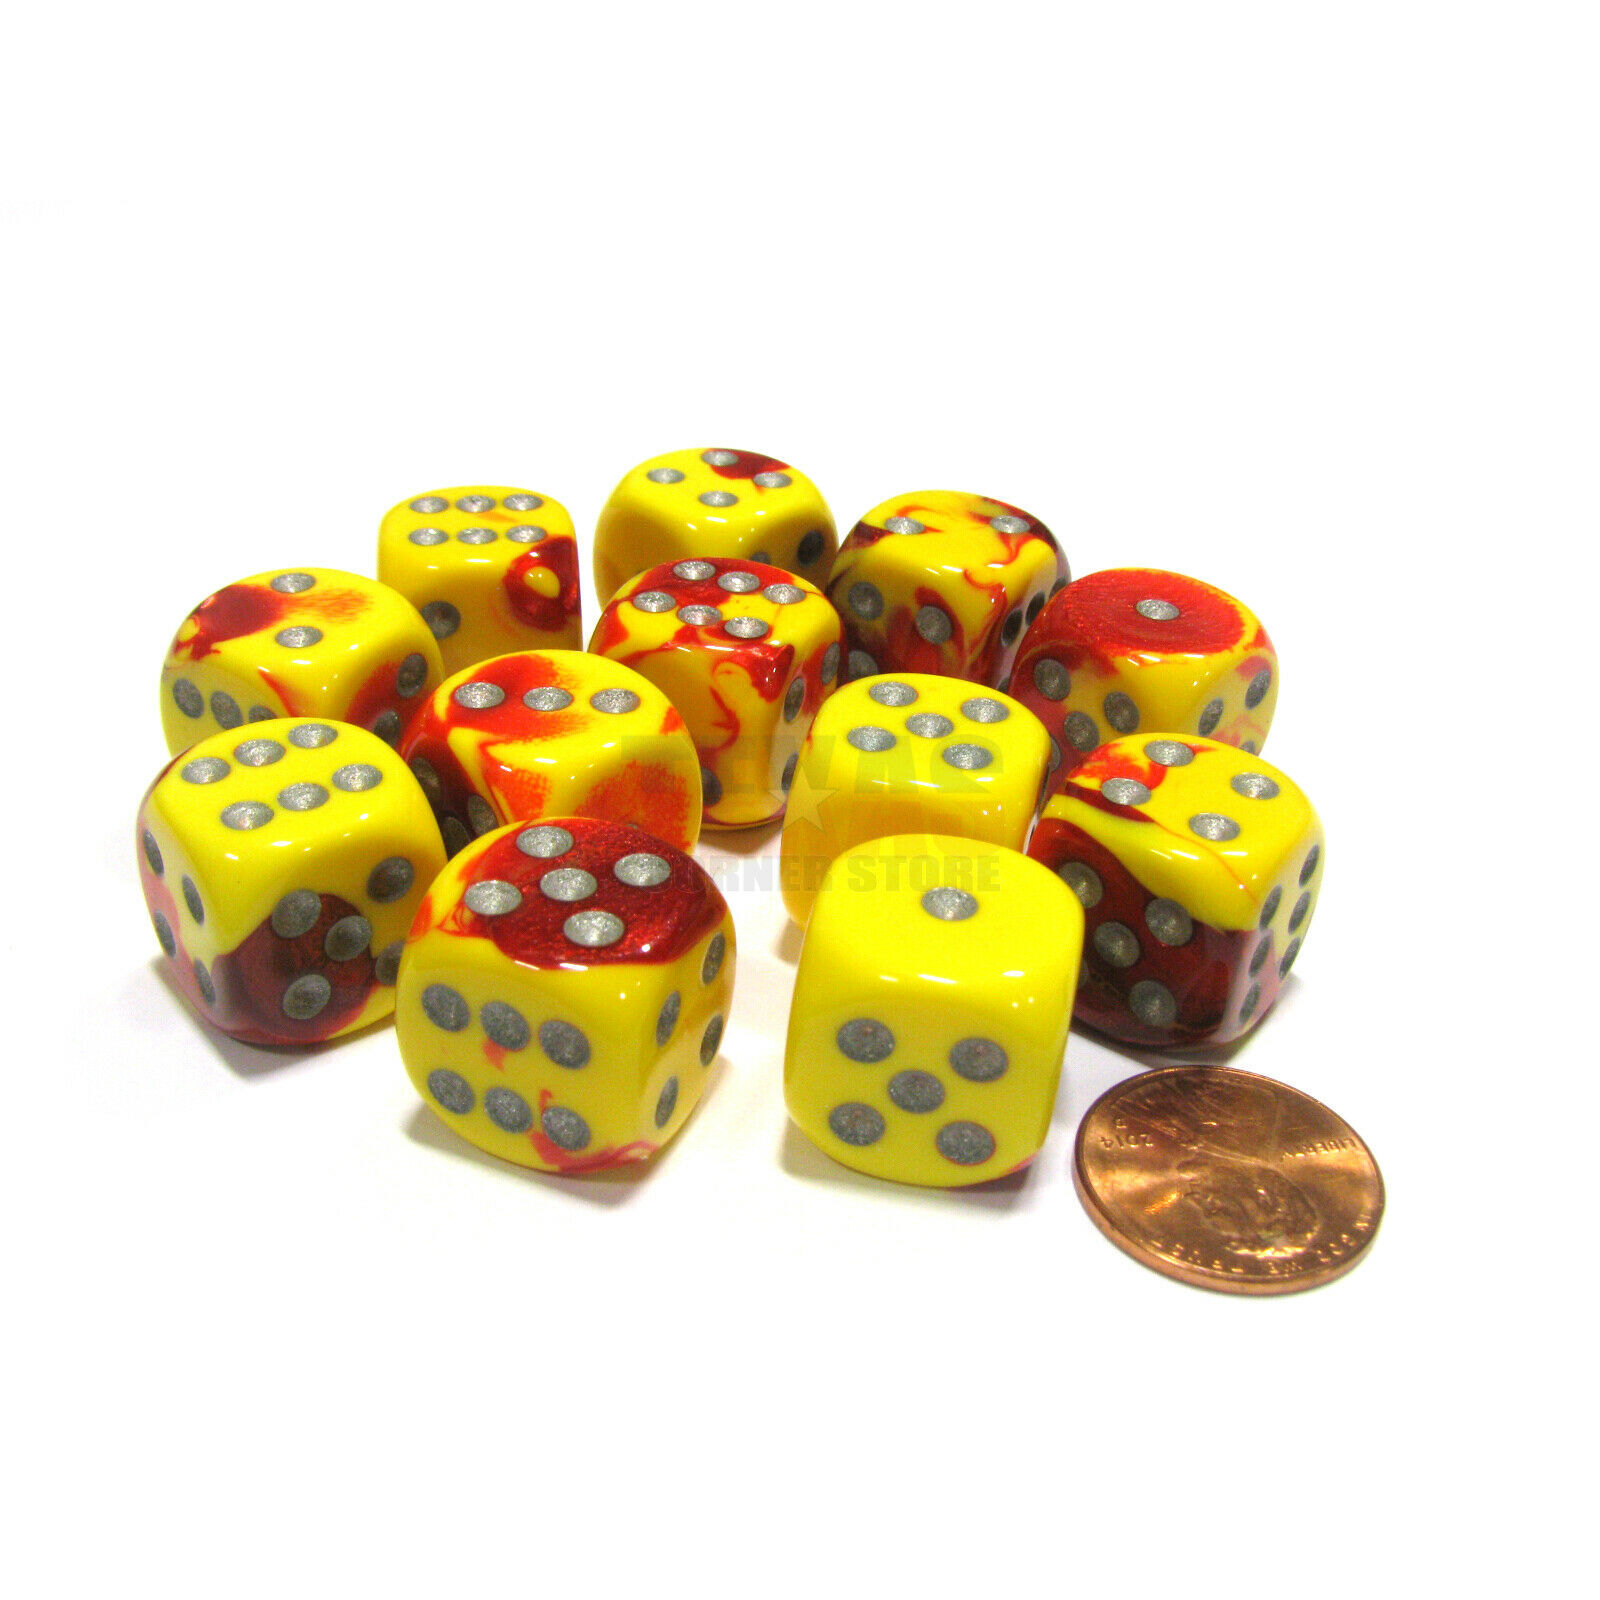 d6-gemini-red-yellow-silver (1)